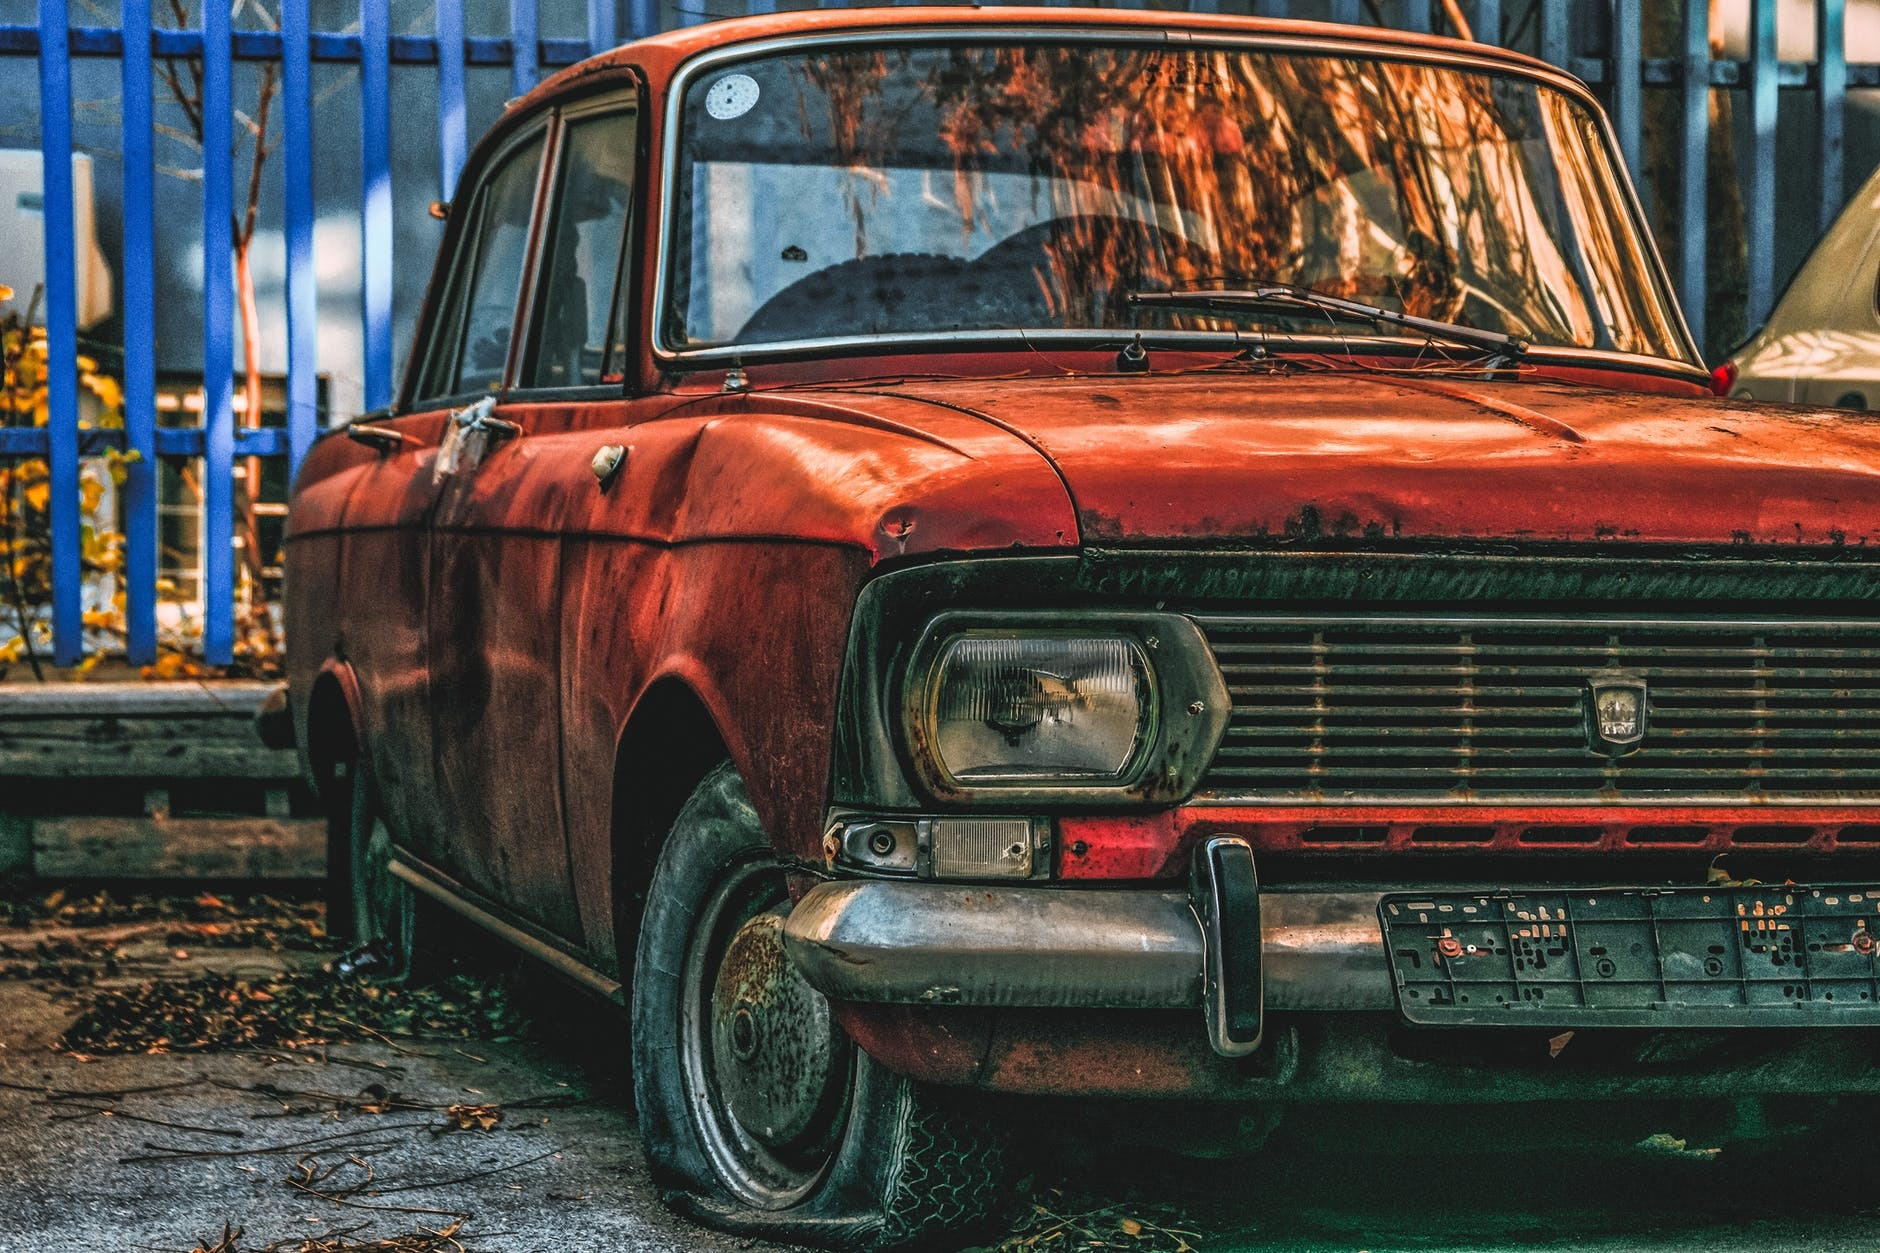 Cash for Junk Cars Company in Kissimmee, FL | (407) 267-2055 Auto ...